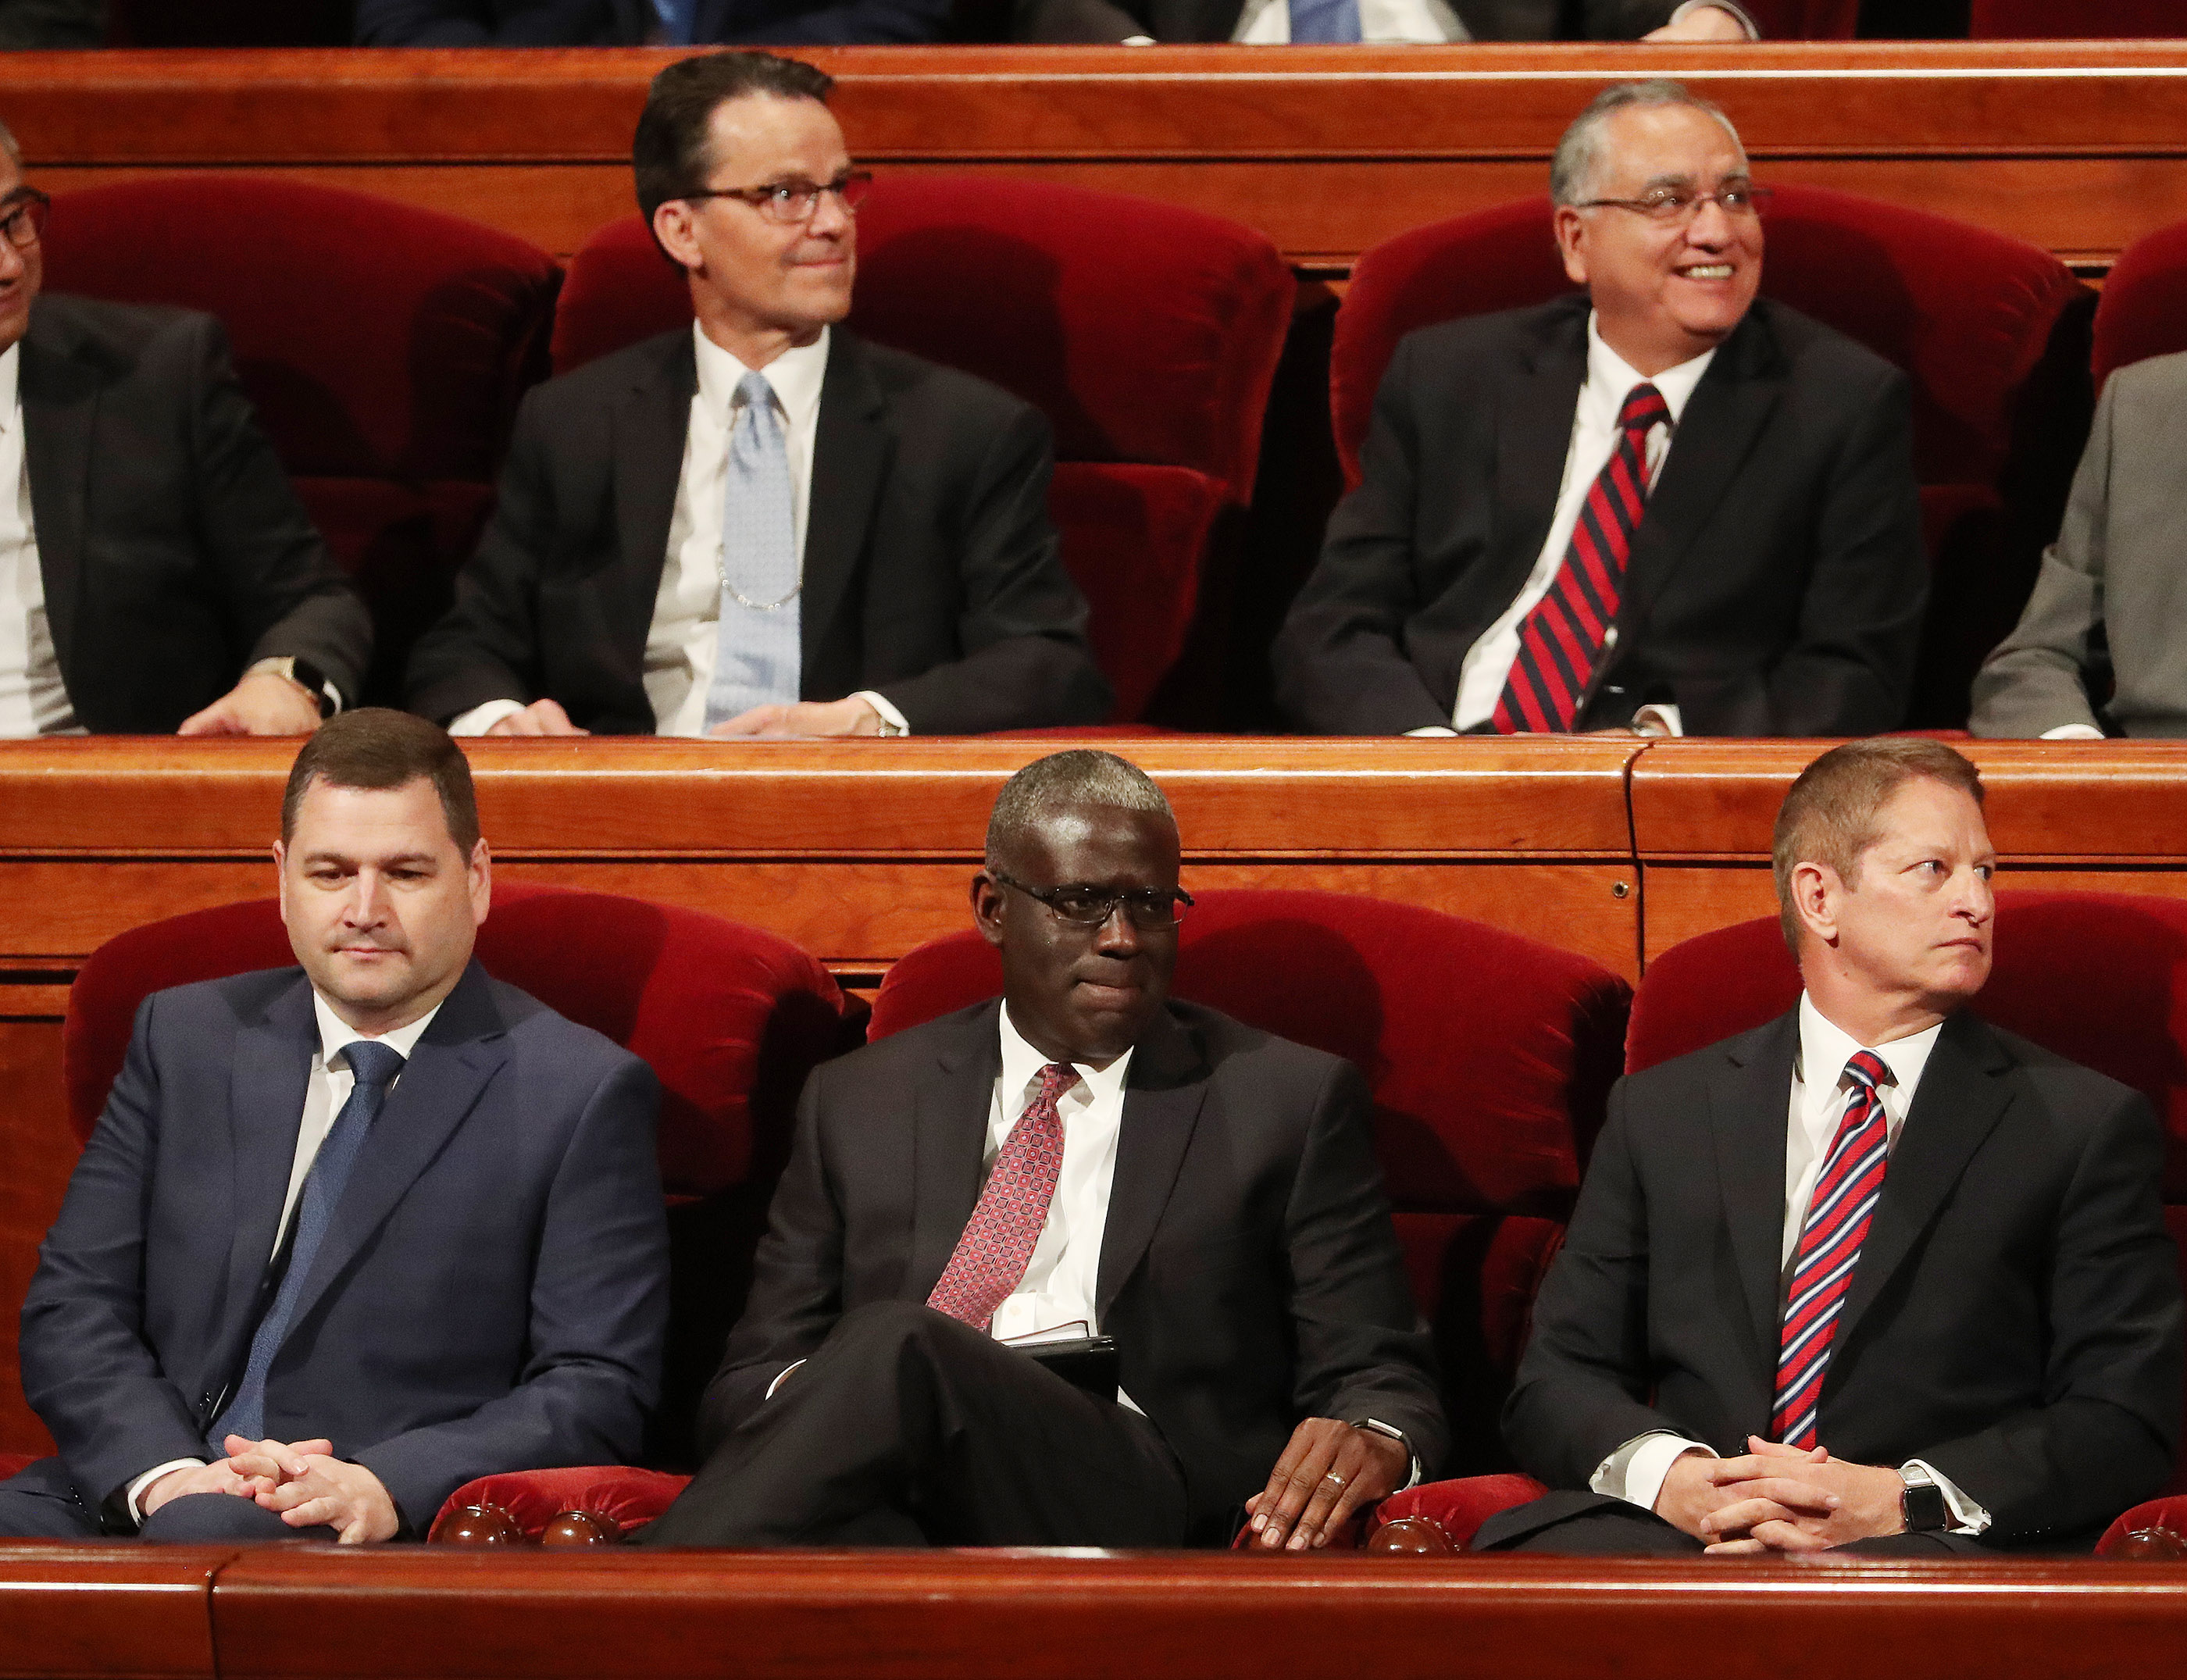 Elder Peter M. Johnson, new General Authority Seventy of The Church of Jesus Christ of Latter-day Saints, center, takes the stand during the Saturday afternoon session of the 189th Annual General Conference of The Church of Jesus Christ of Latter-day Saints in Salt Lake City in the Conference Center on Saturday, April 6, 2019.